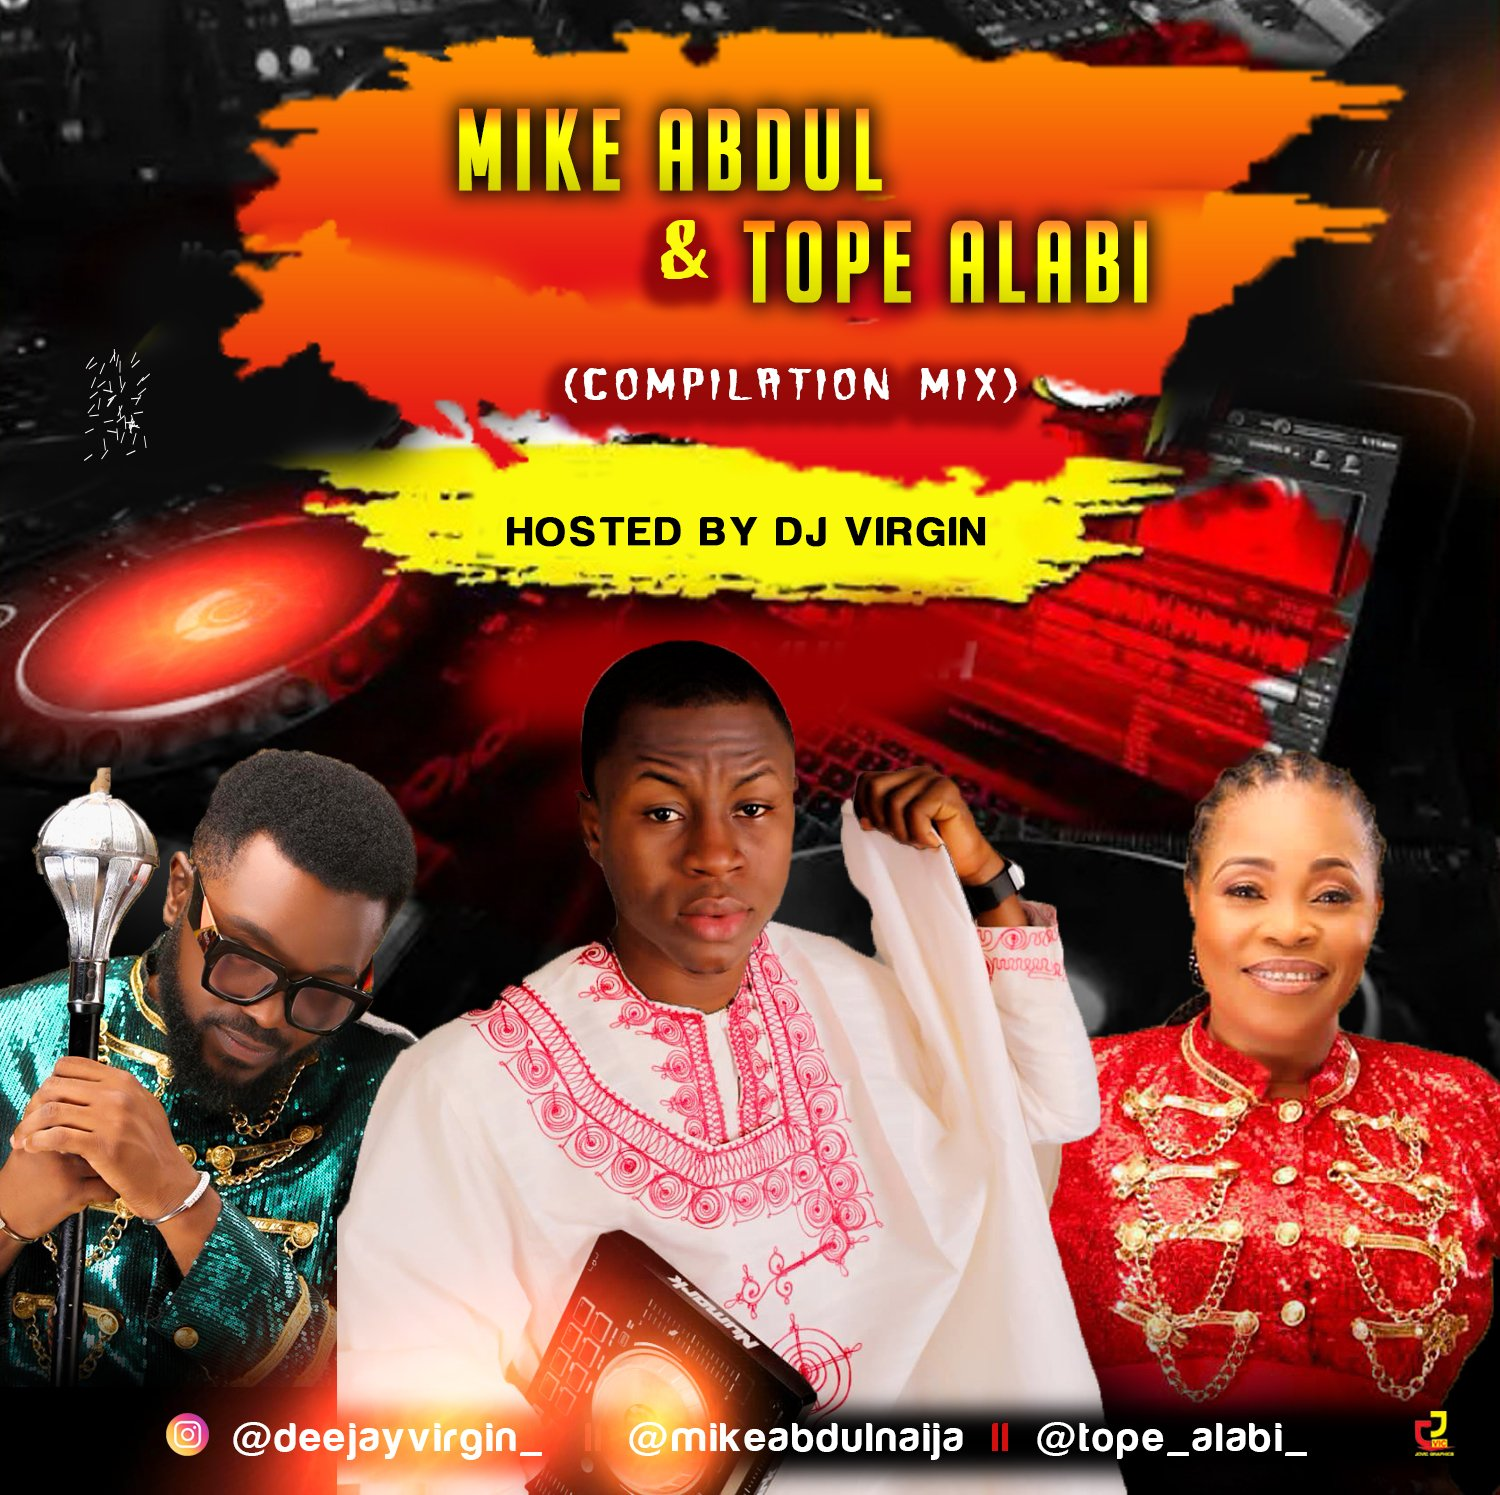 GOSPEL MIX: DJ Virgin – Mike Abdul x Tope Alabi Compilation Mix